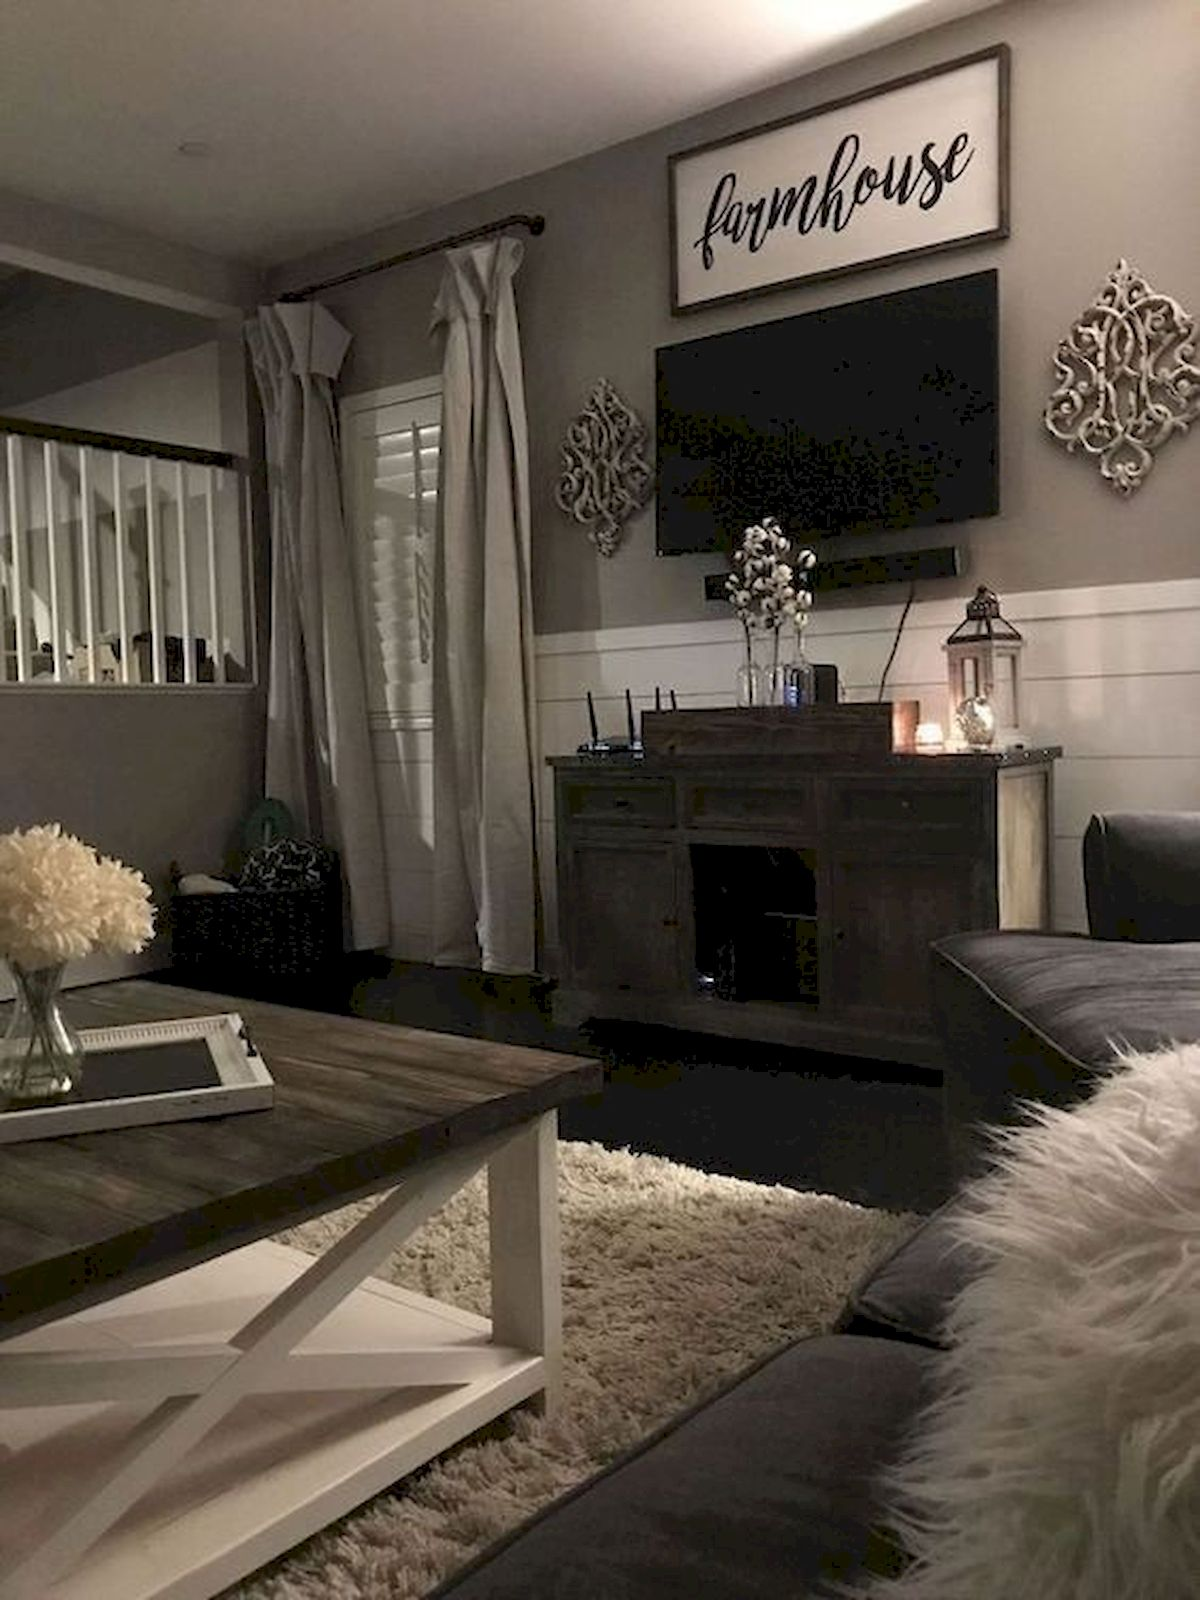 30 Awesome Small Apartment Design and Decor Ideas With Farmhouse Styles (20)